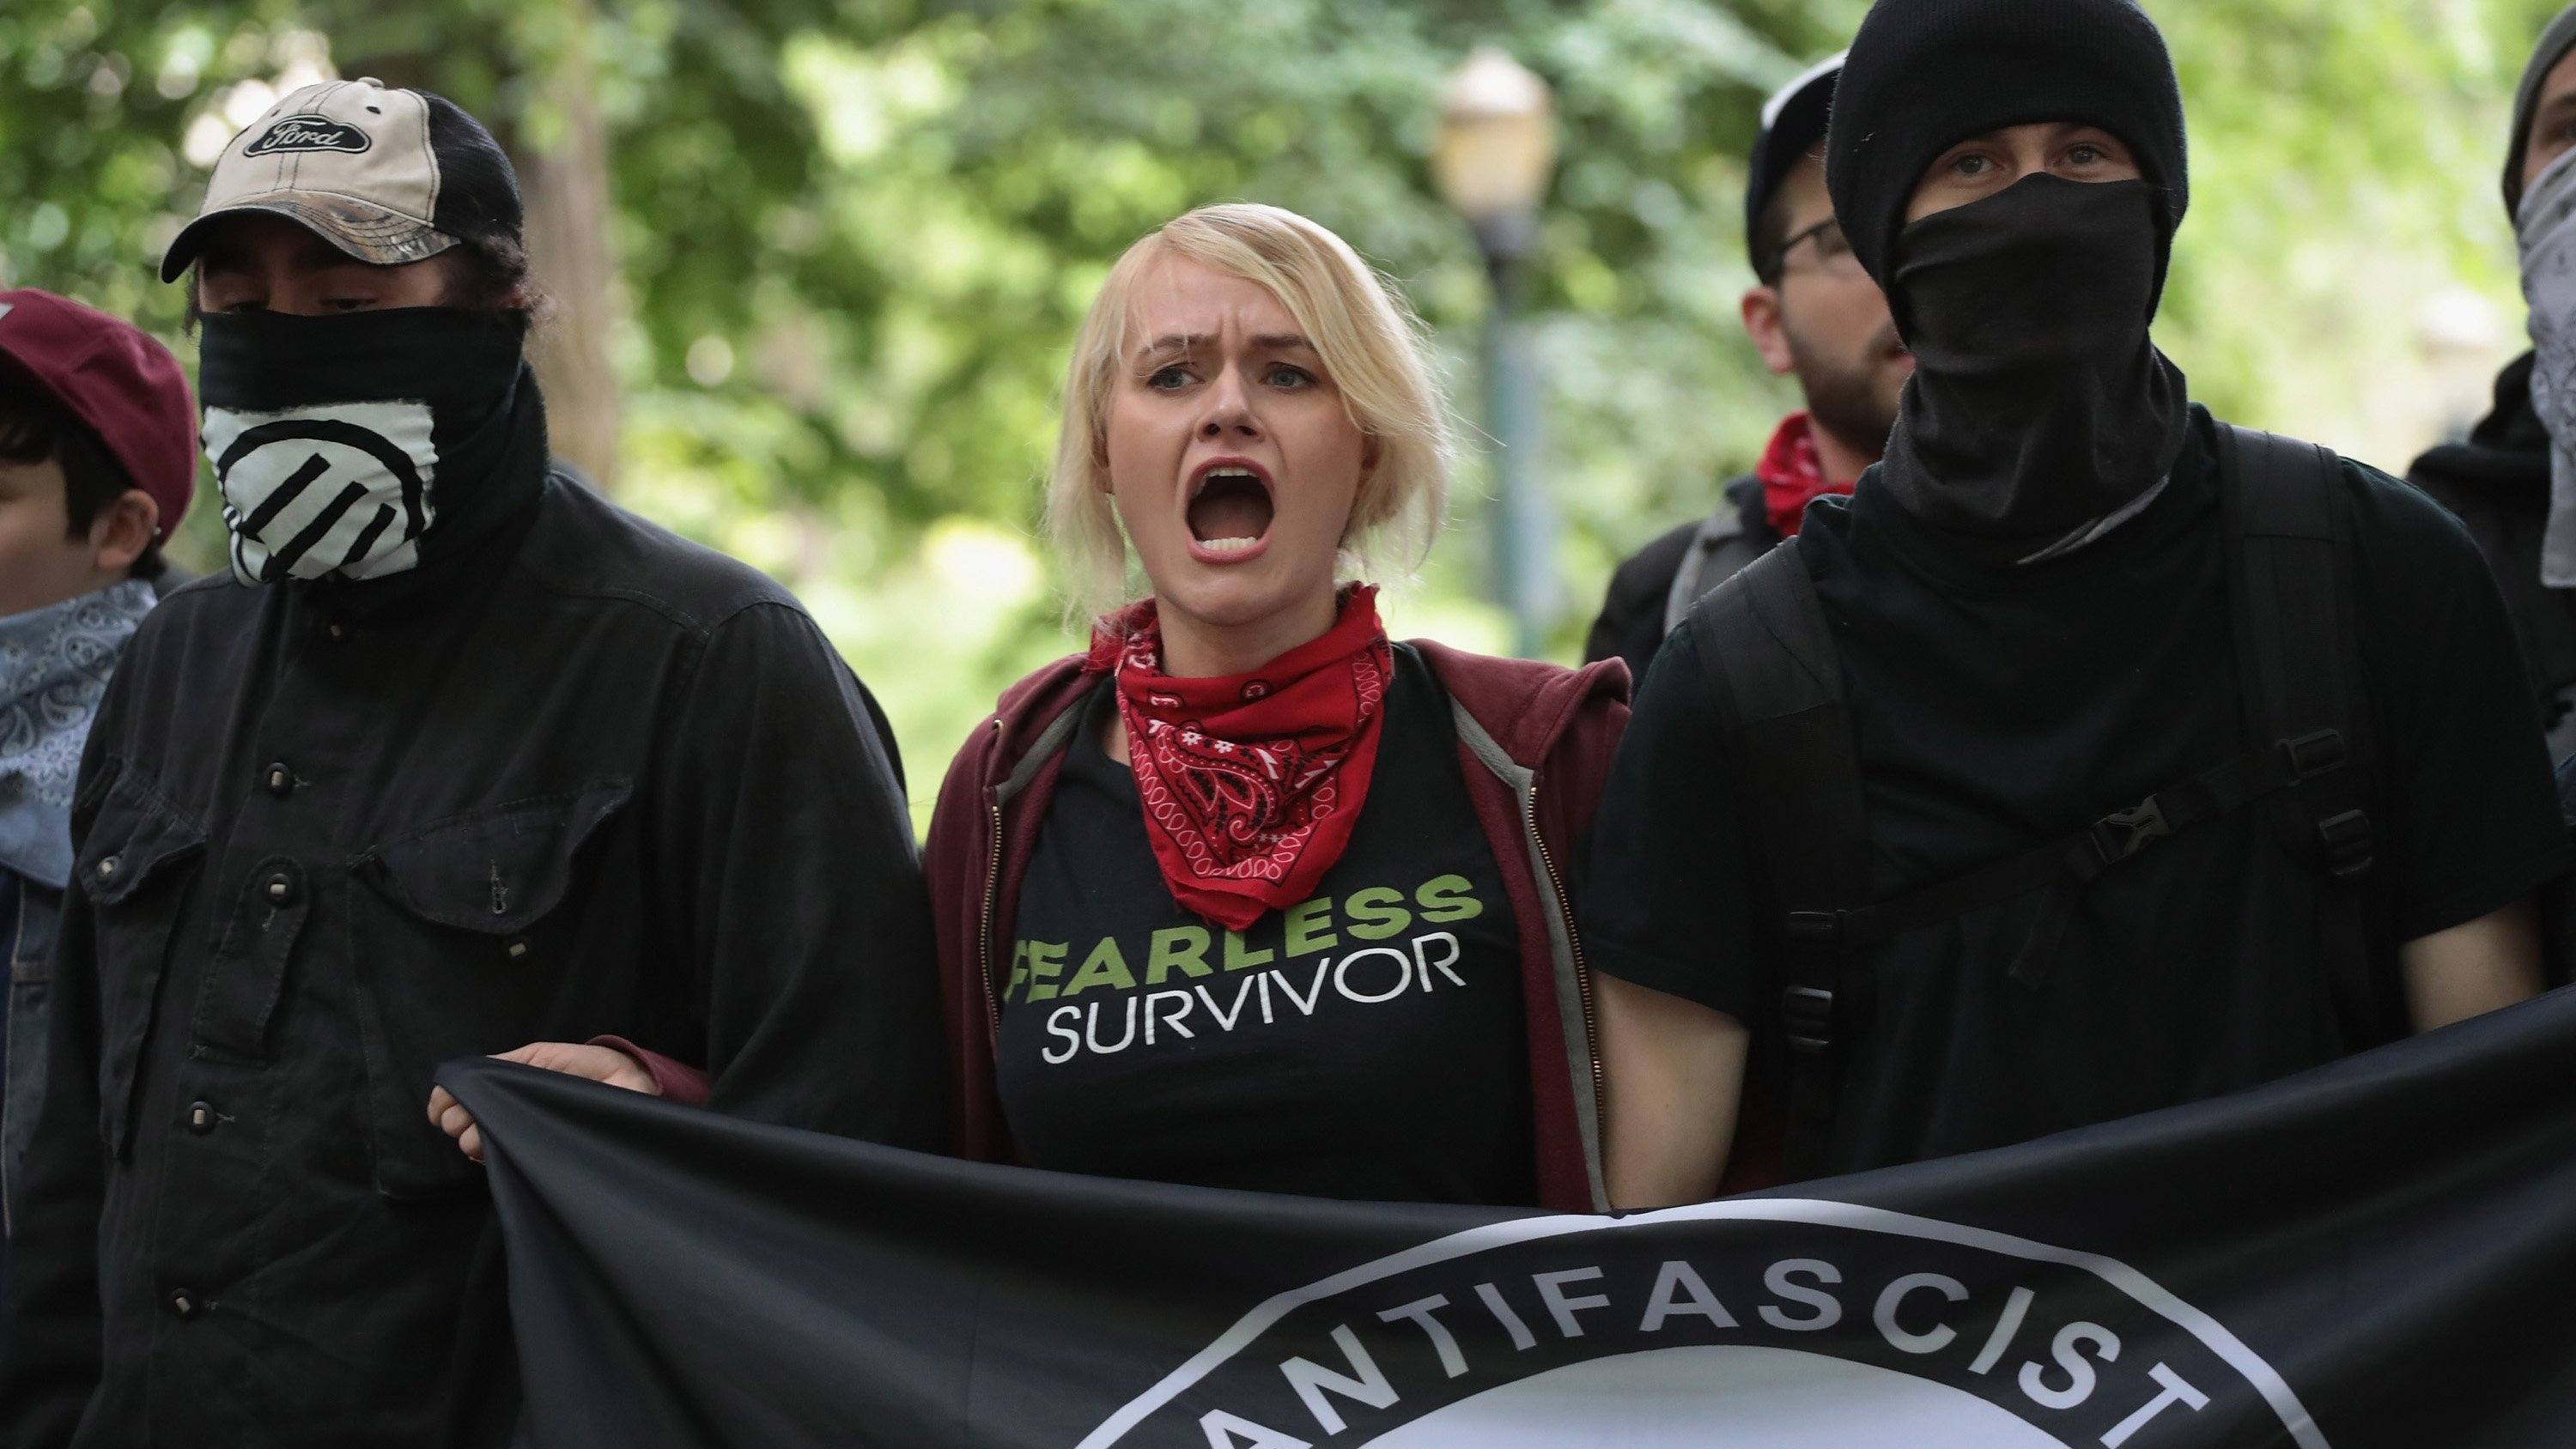 At least 3 arrested in dueling protests between Antifa and far-right groups in Portland, Oregon